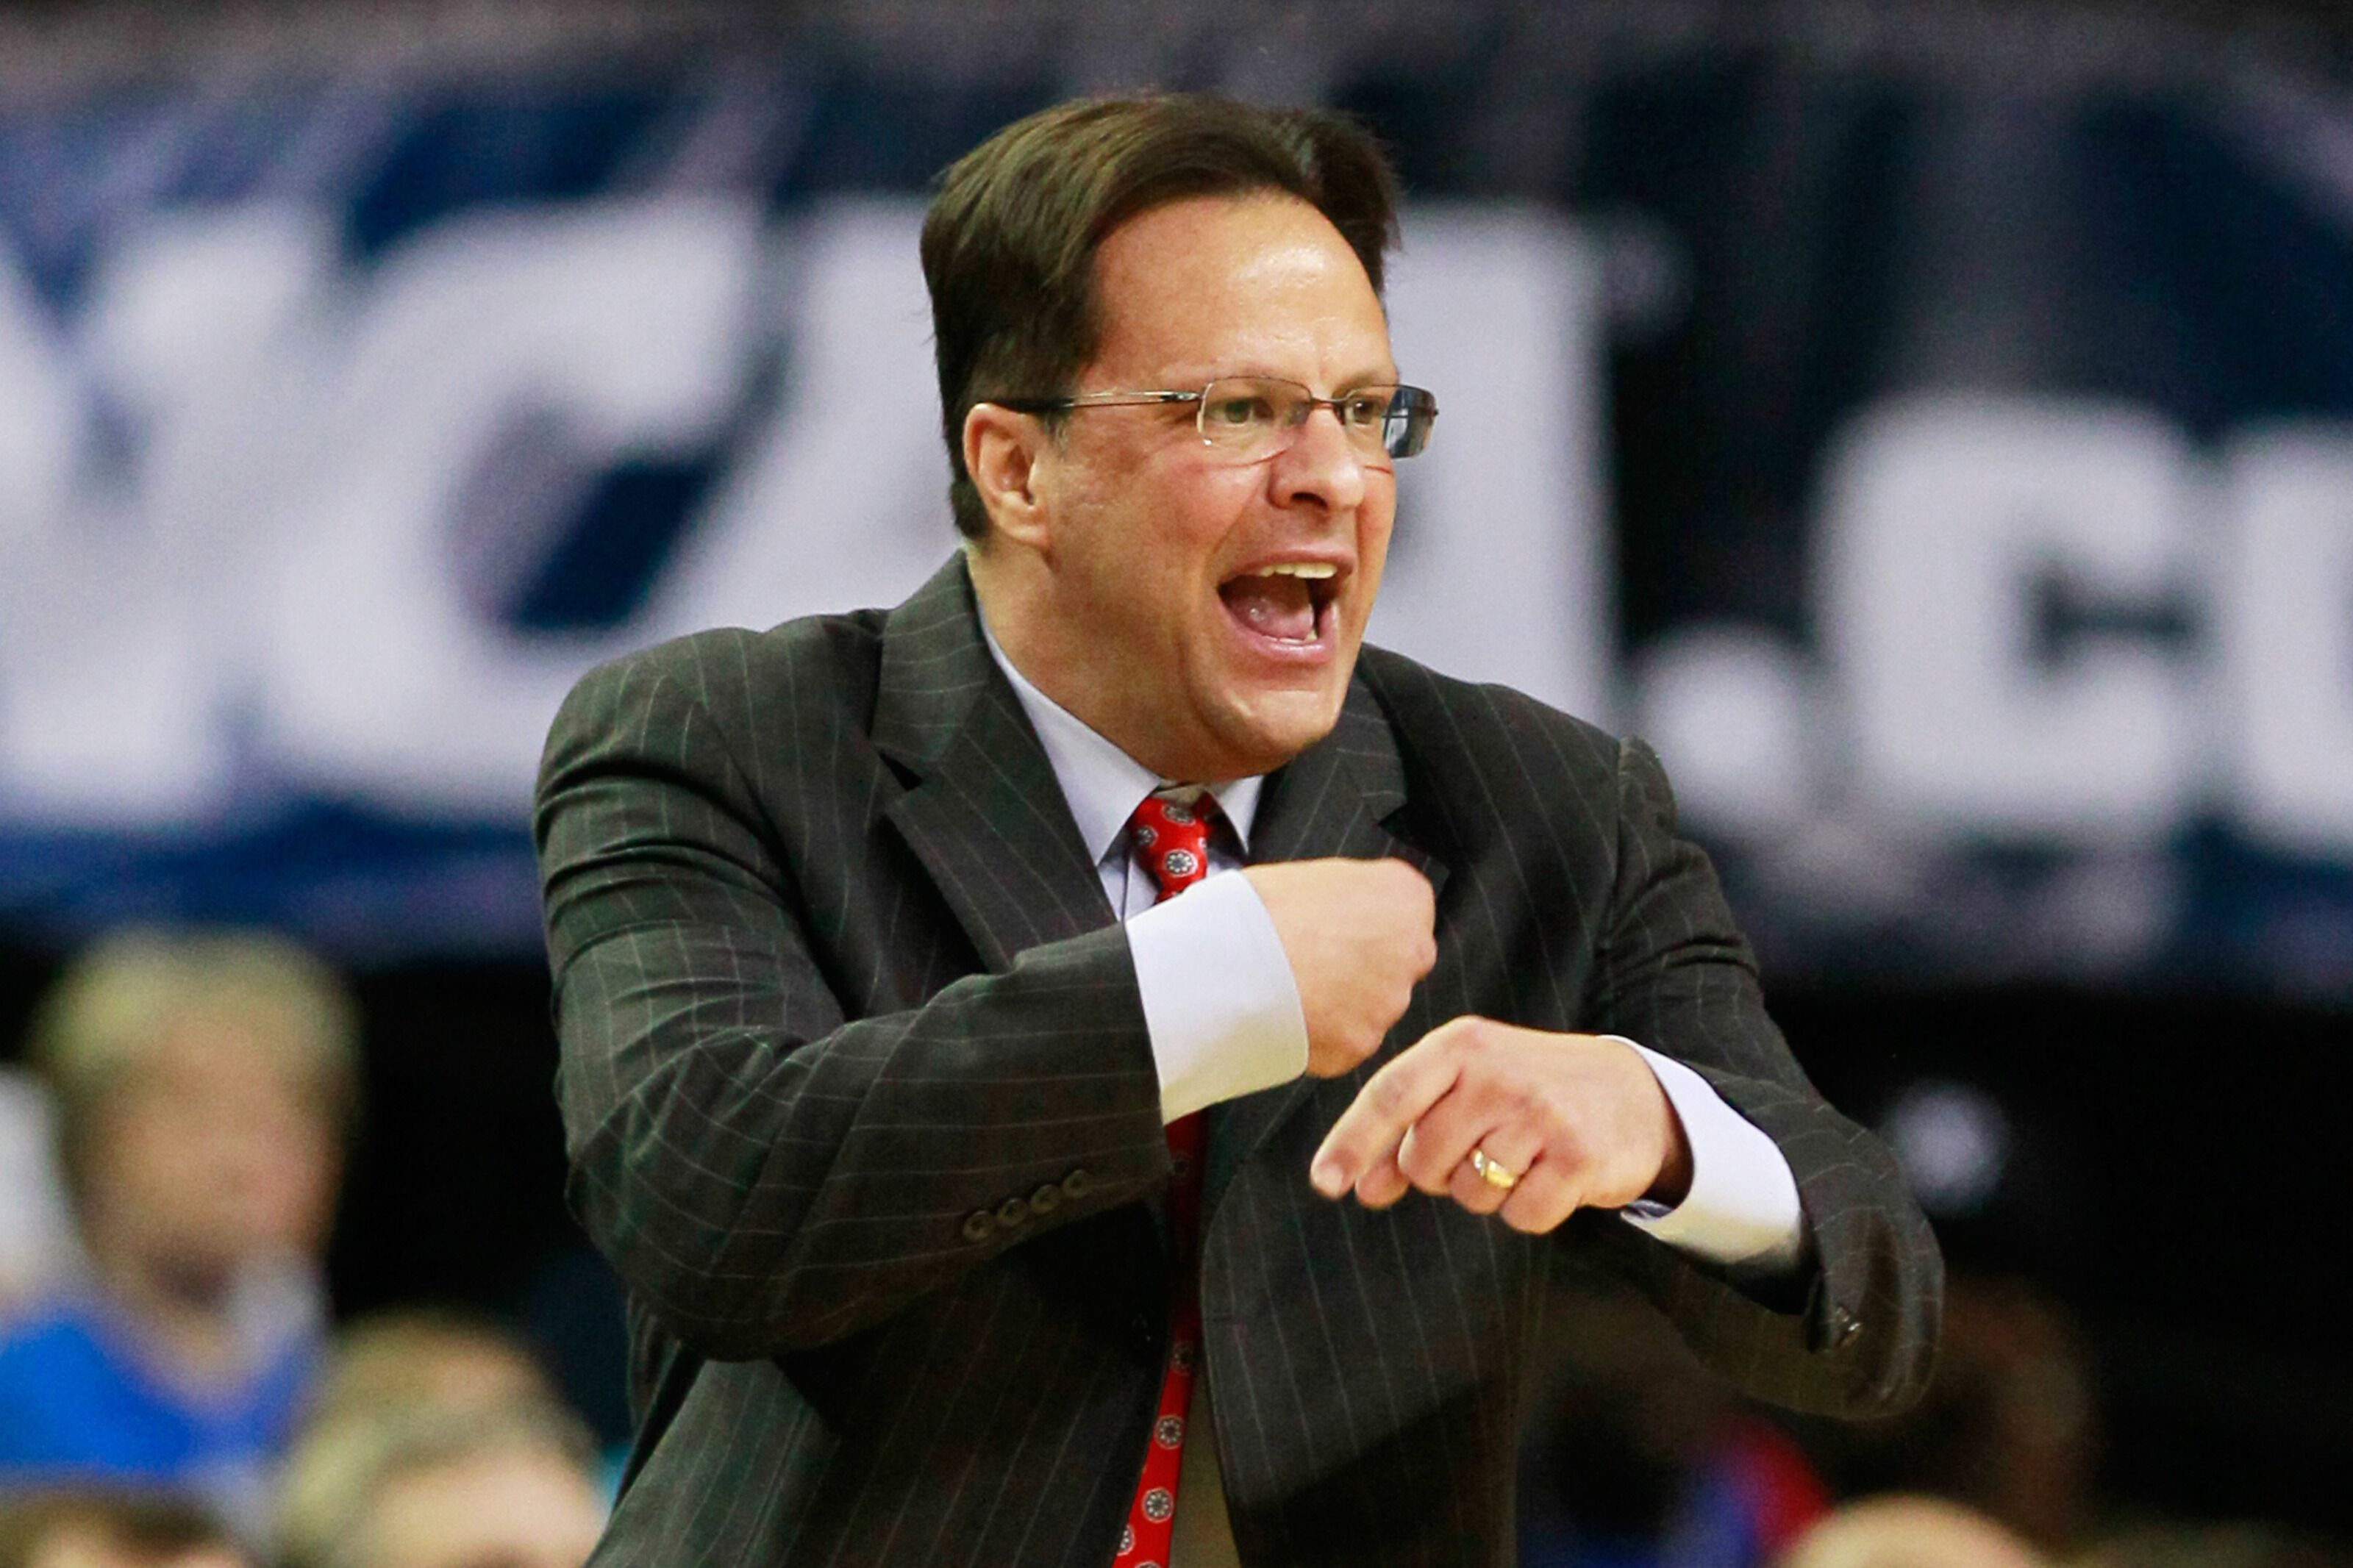 Georgia basketball: Do Bulldogs have another miracle SEC Tournament run in them?